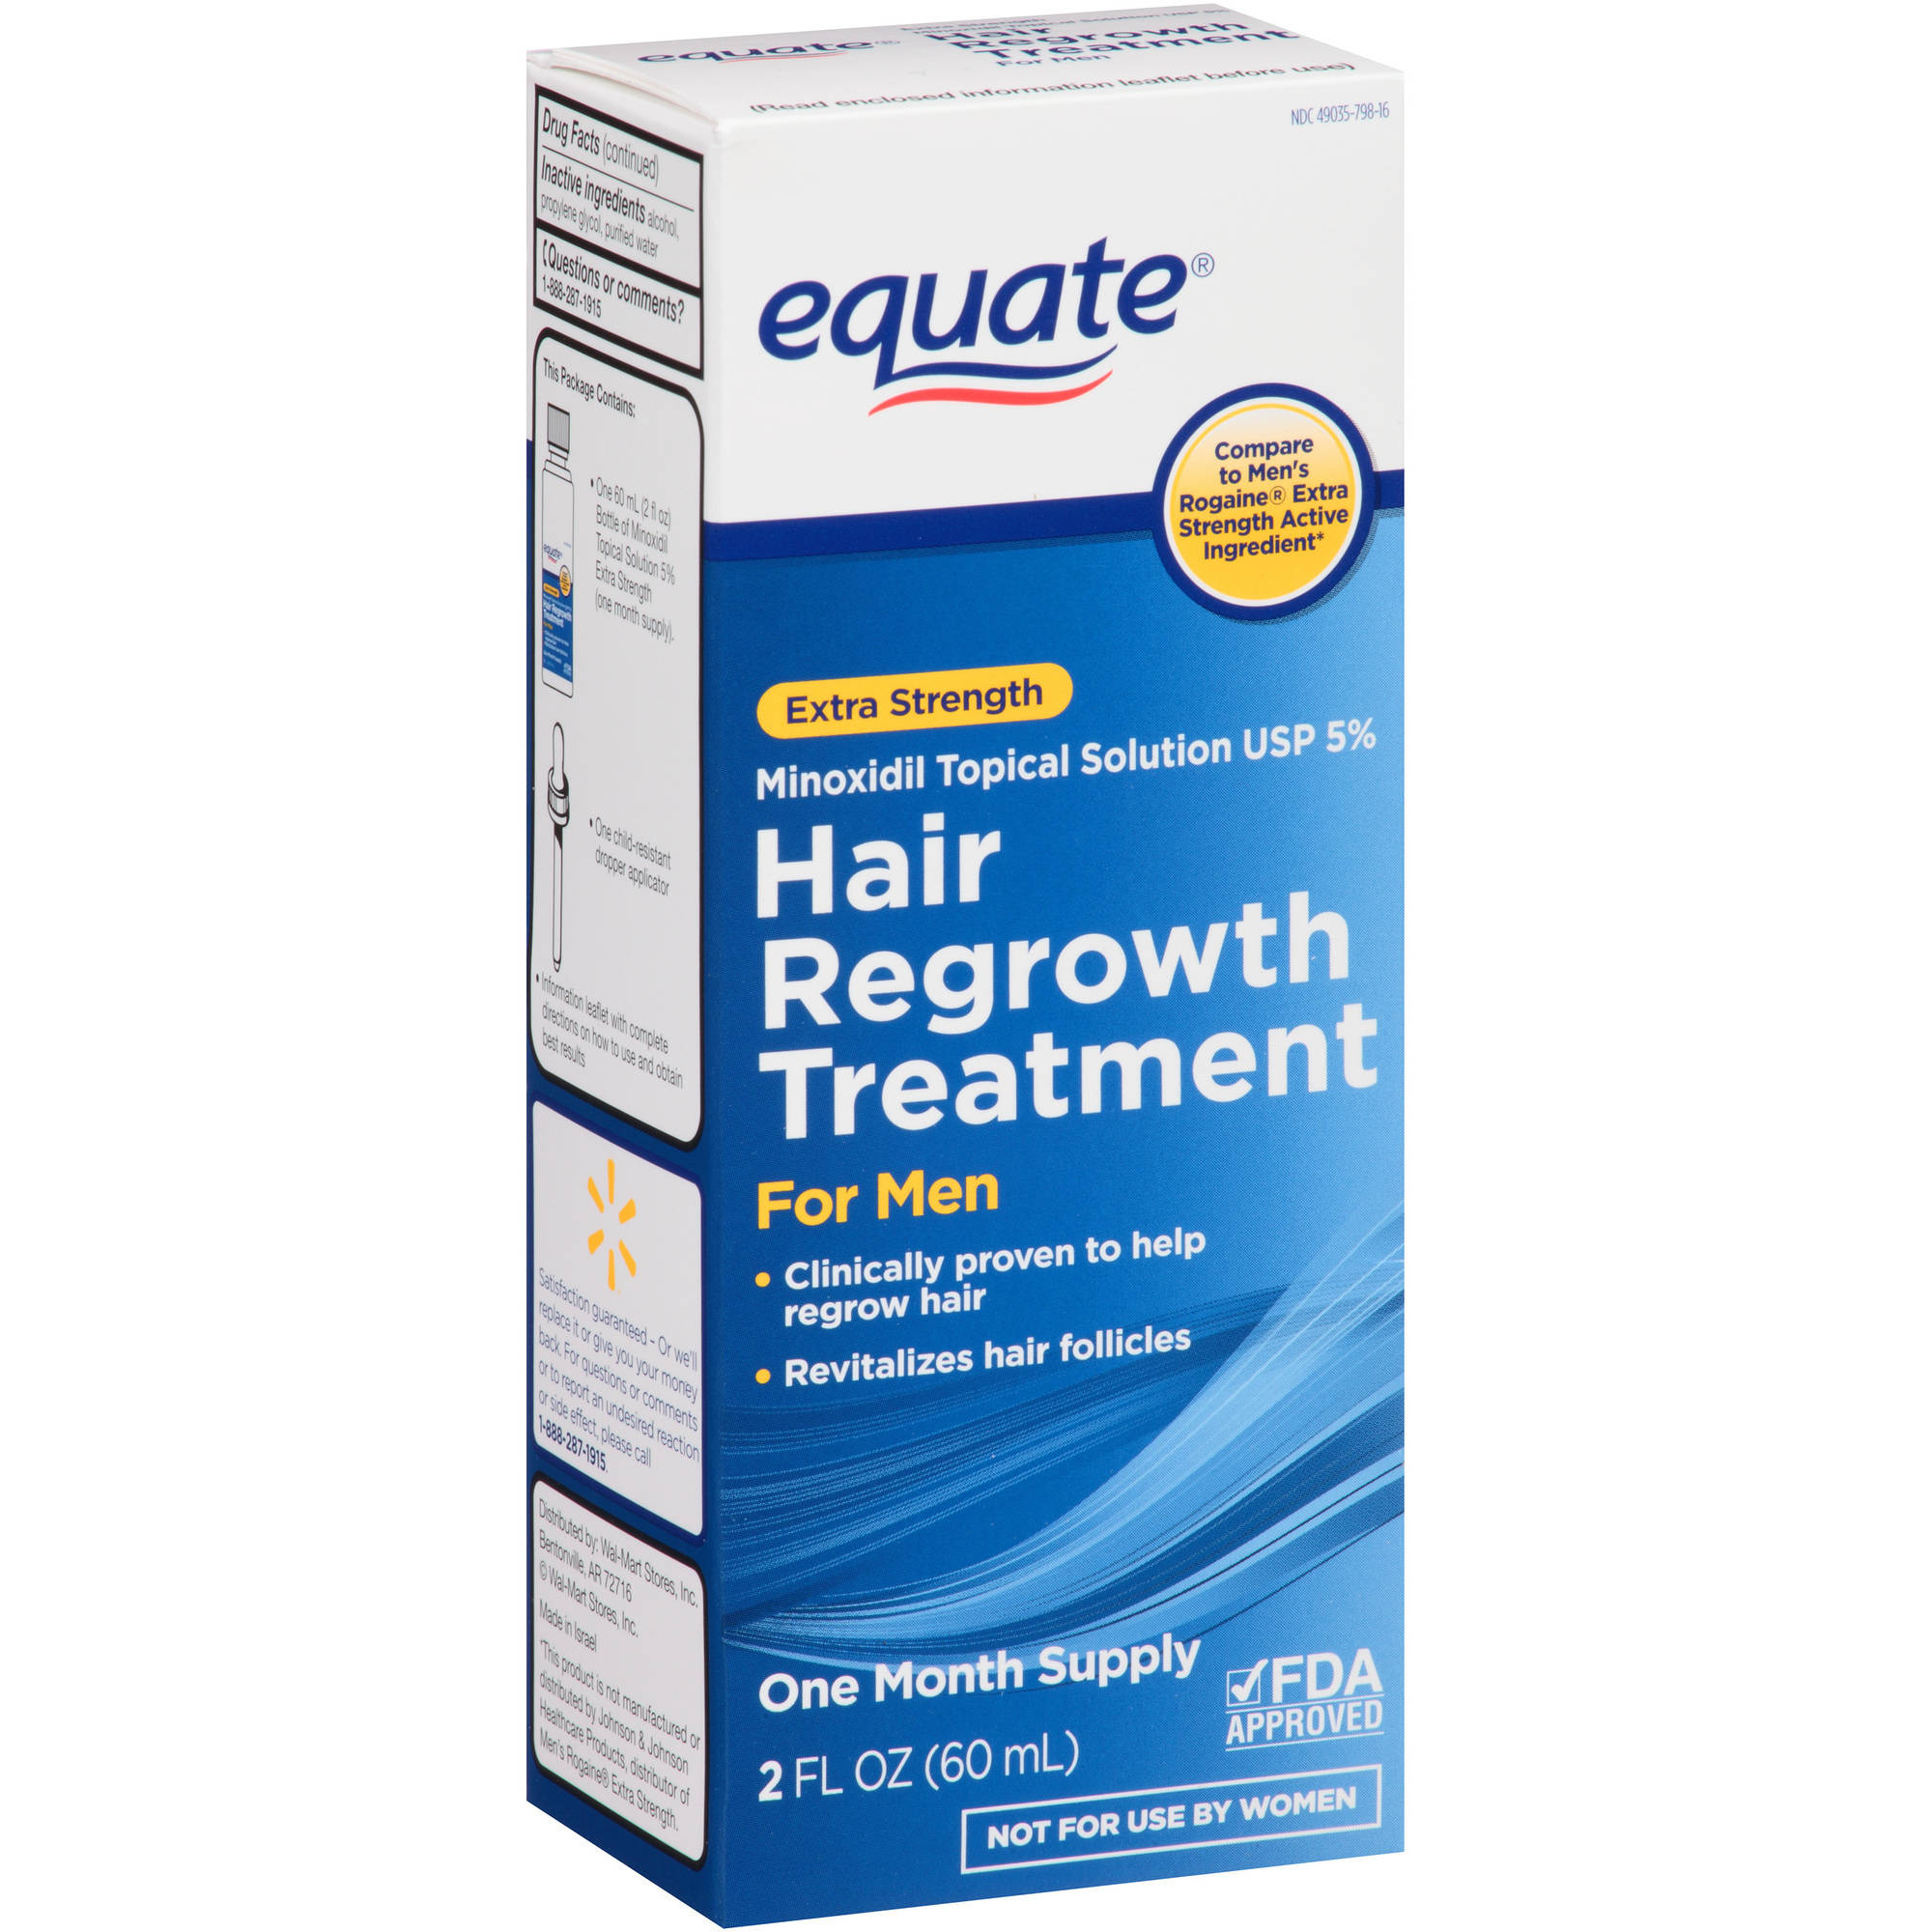 Equate Extra Strength Hair Regrowth Topical Solution for Men, 2 oz